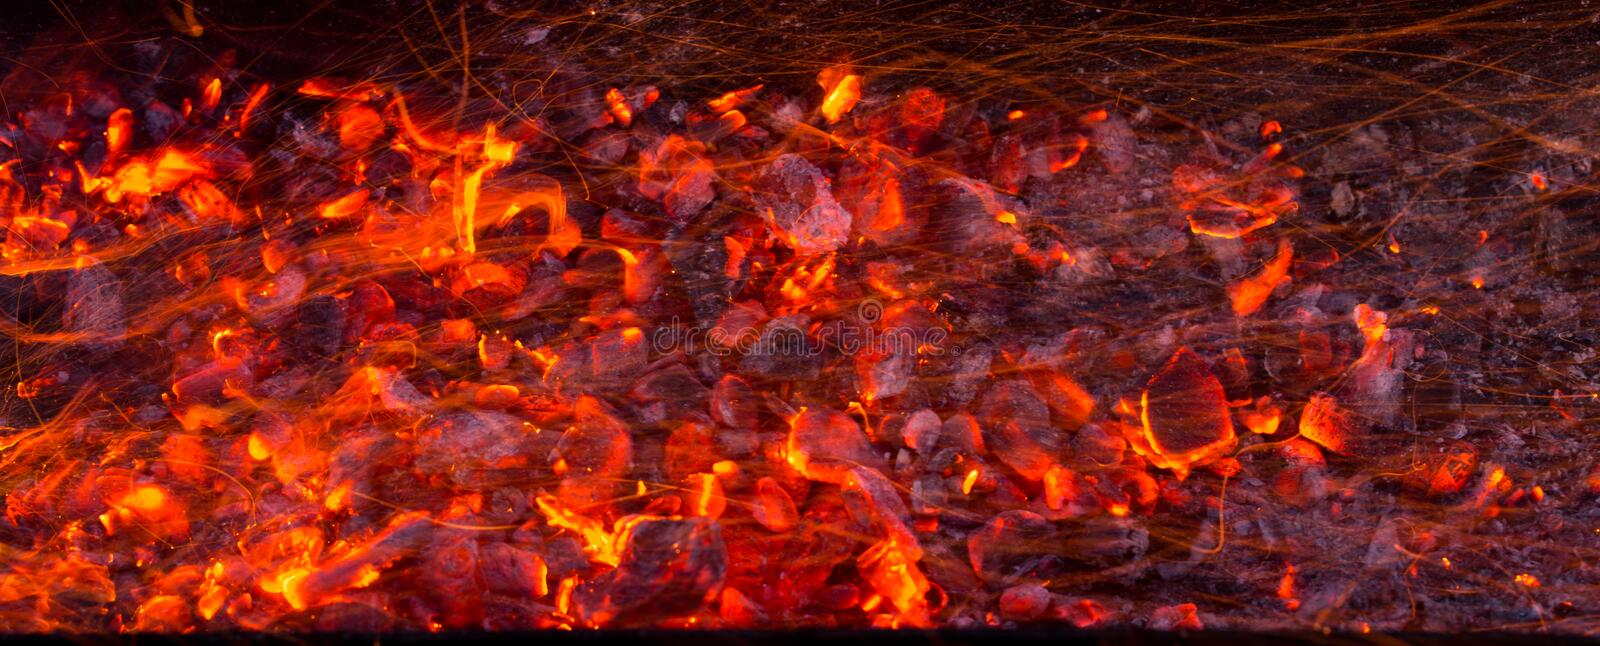 Burning charcoal as background stock photos